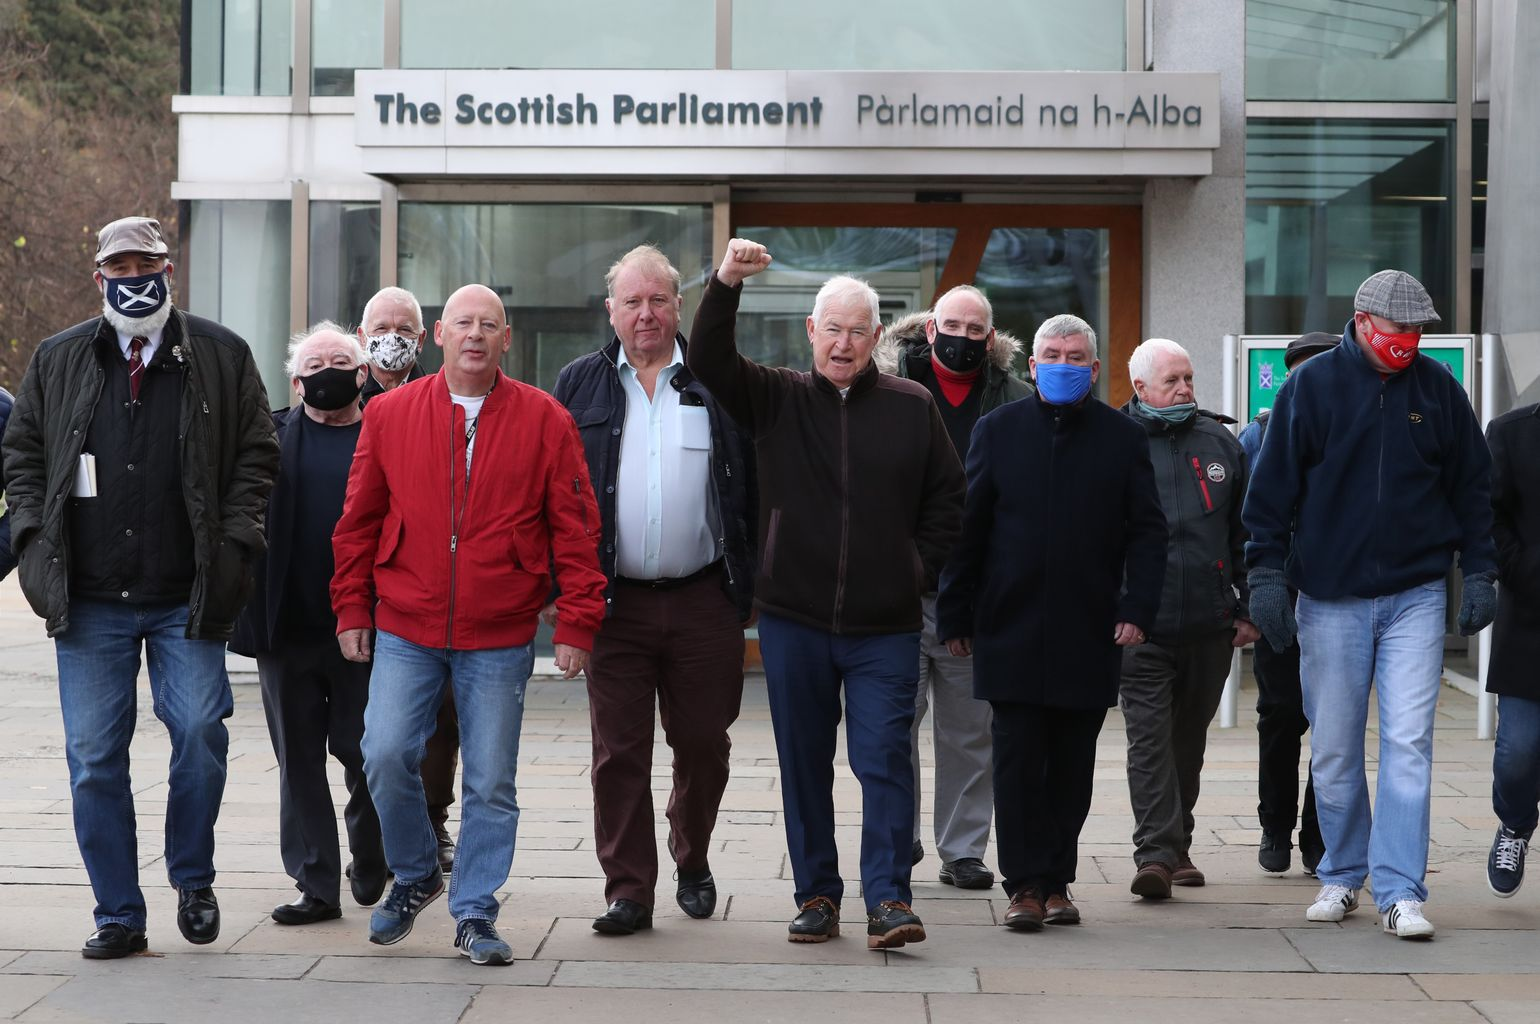 Miners convicted during 1980s strike to receive pardon